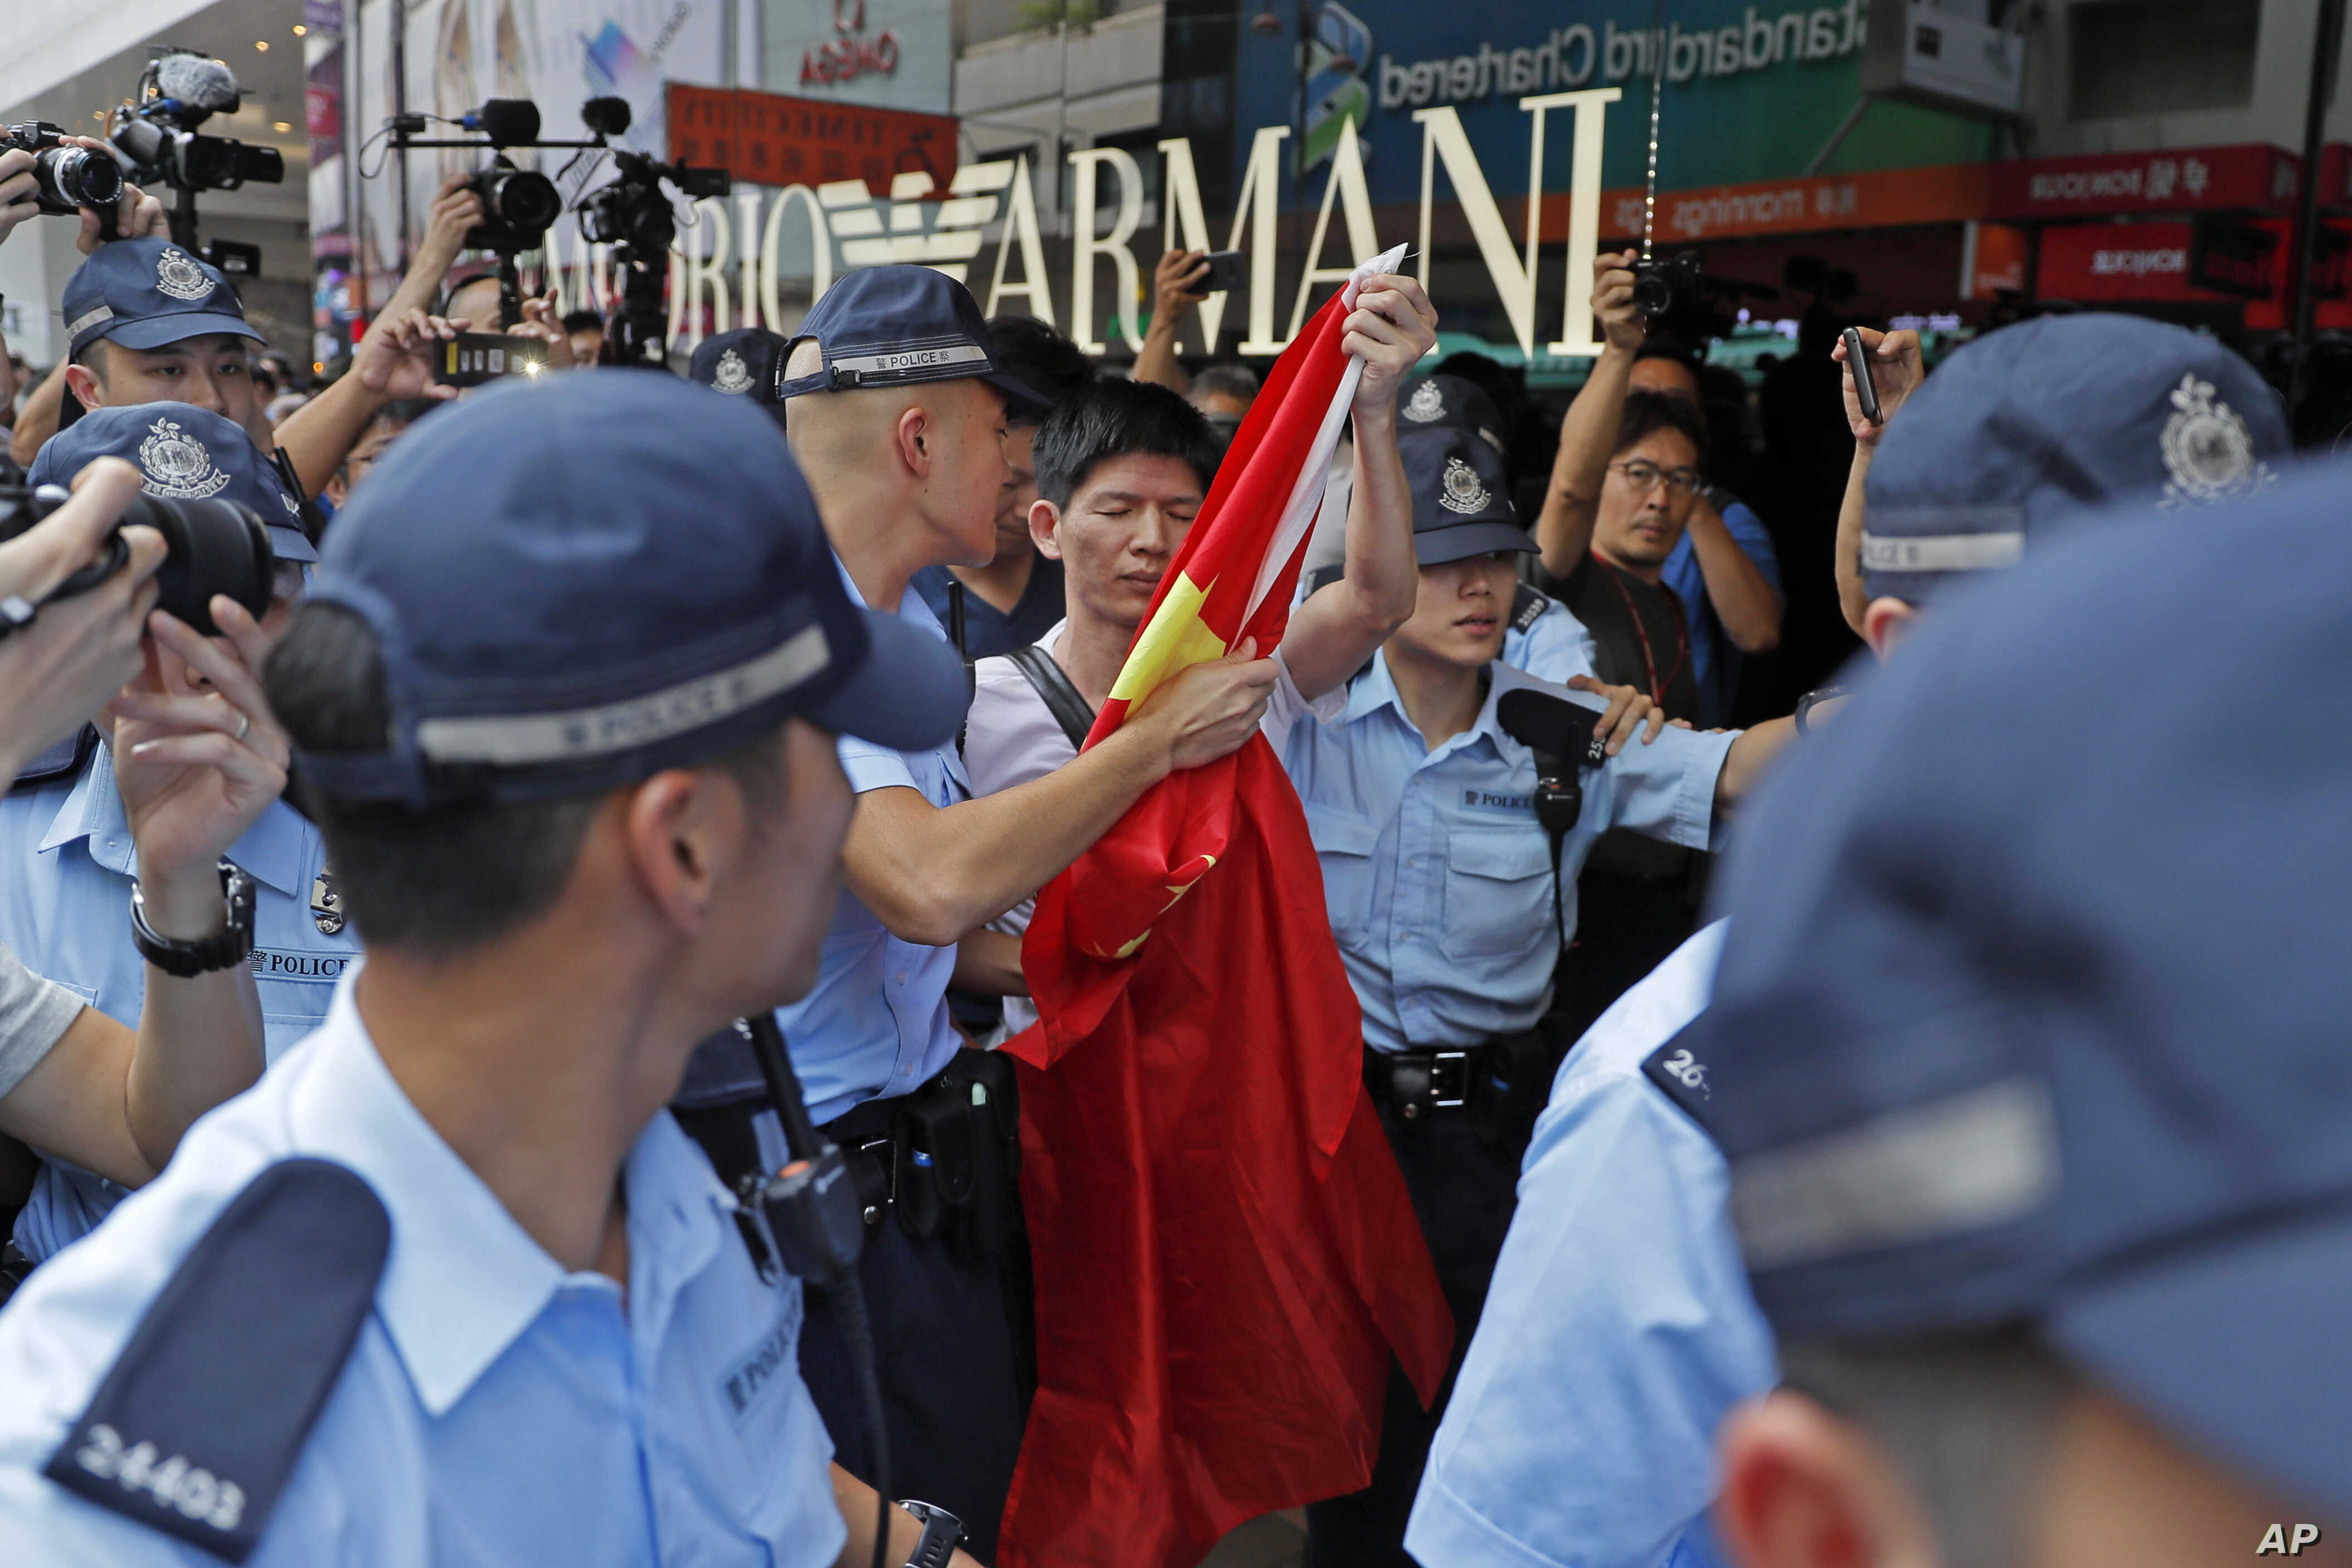 A pro-China supporter, holding a Chinese national flag at center, is escorted by police officers in a shopping mall in Hong Kong, Wednesday, Sept. 18, 2019. Activists involved in the pro-democracy protests in Hong Kong appealed to U.S. lawmakers…